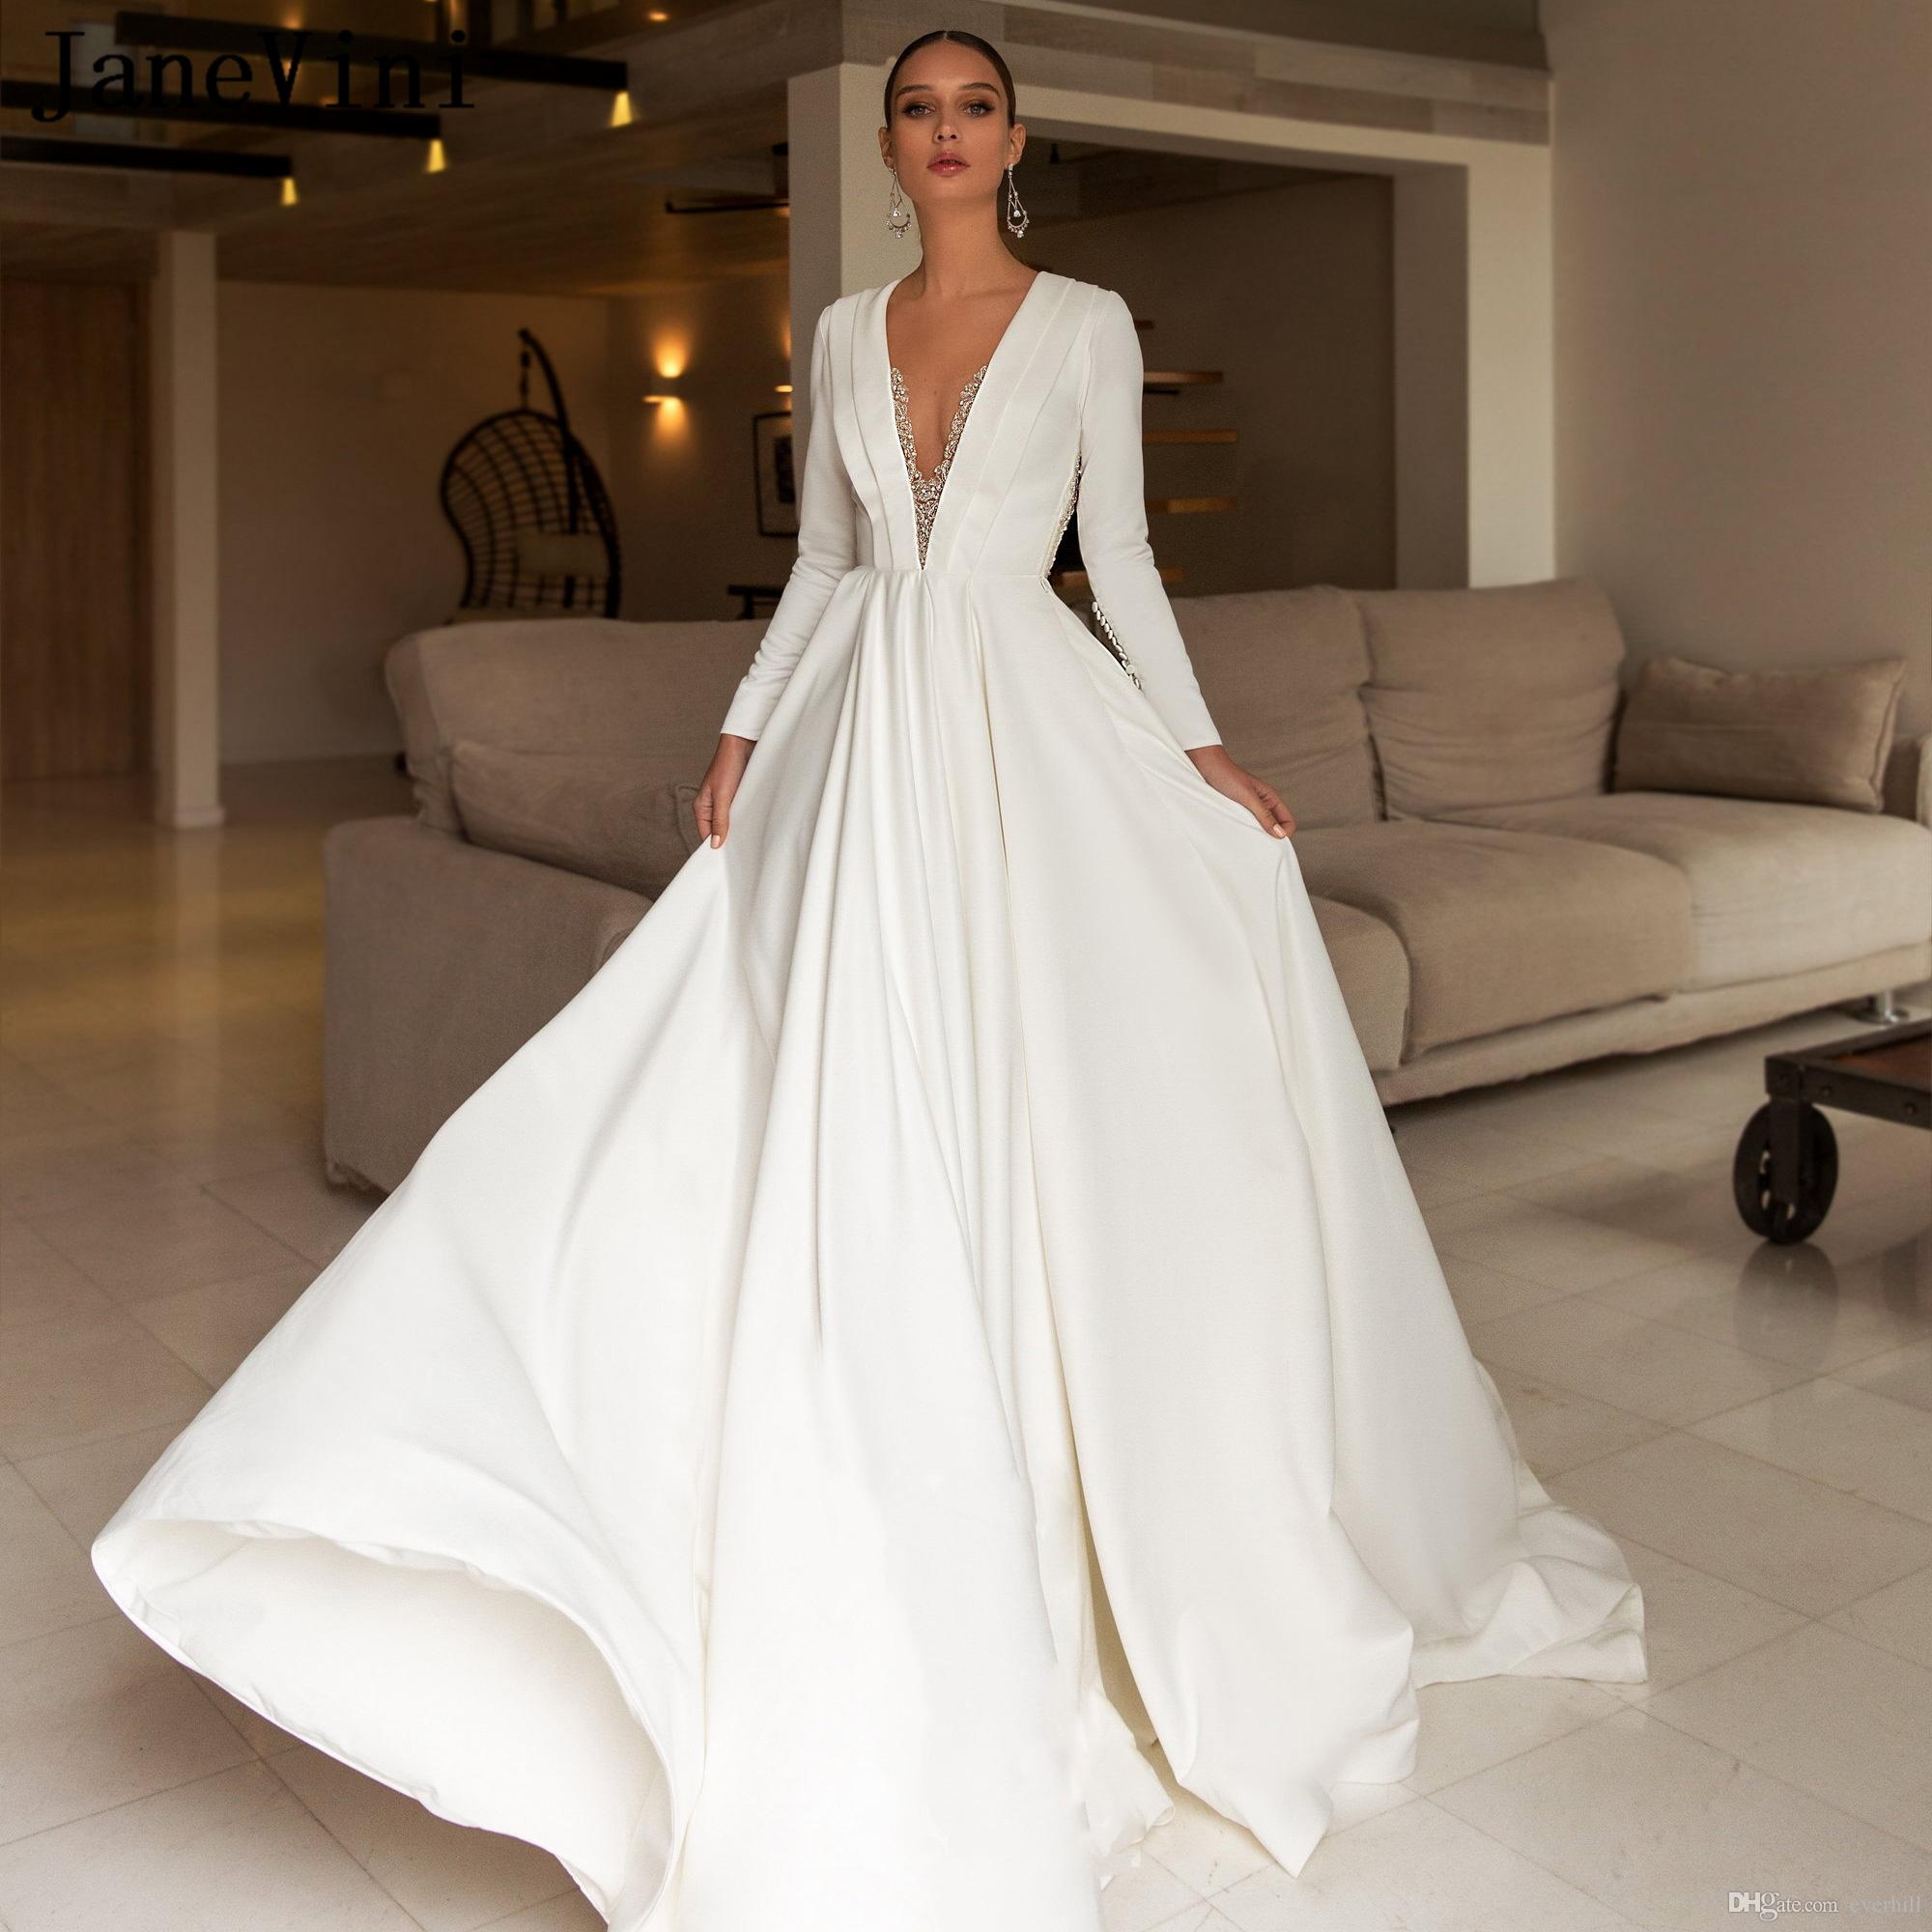 JaneVini Luxury Beading Satin Long Sleeves Wedding Dresses A Line 2019 Sexy Deep V Neck Illusion Back Vintage White Plus Size Bridal Gowns